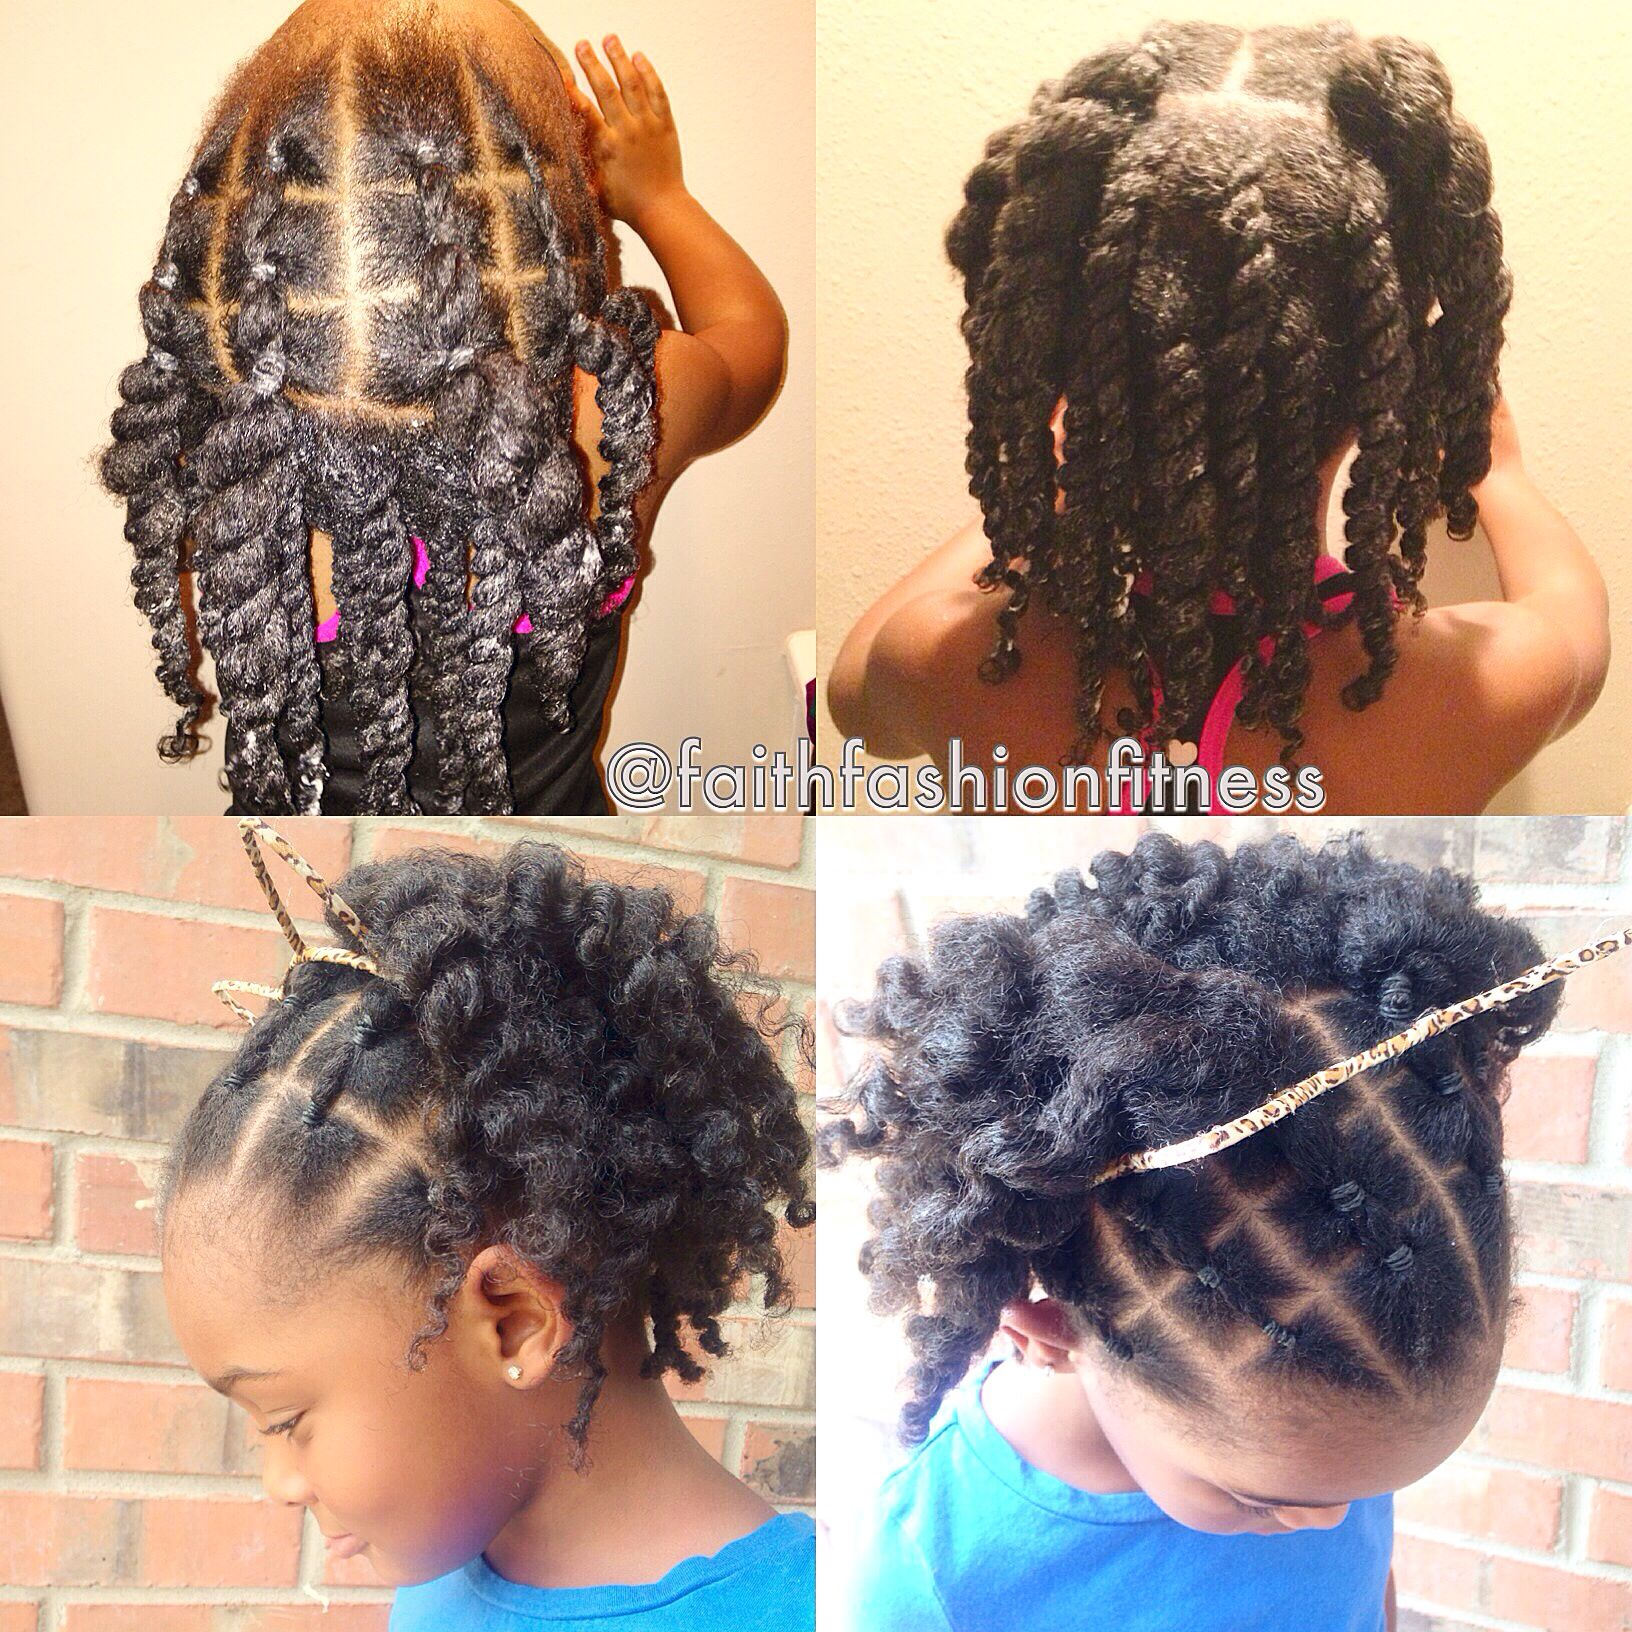 Natural Hairstyle I Saw Online And Tried To In My Daughter It Came Out Cute Top Natural Hair Styles Natural Hairstyles For Kids Transitioning Hairstyles